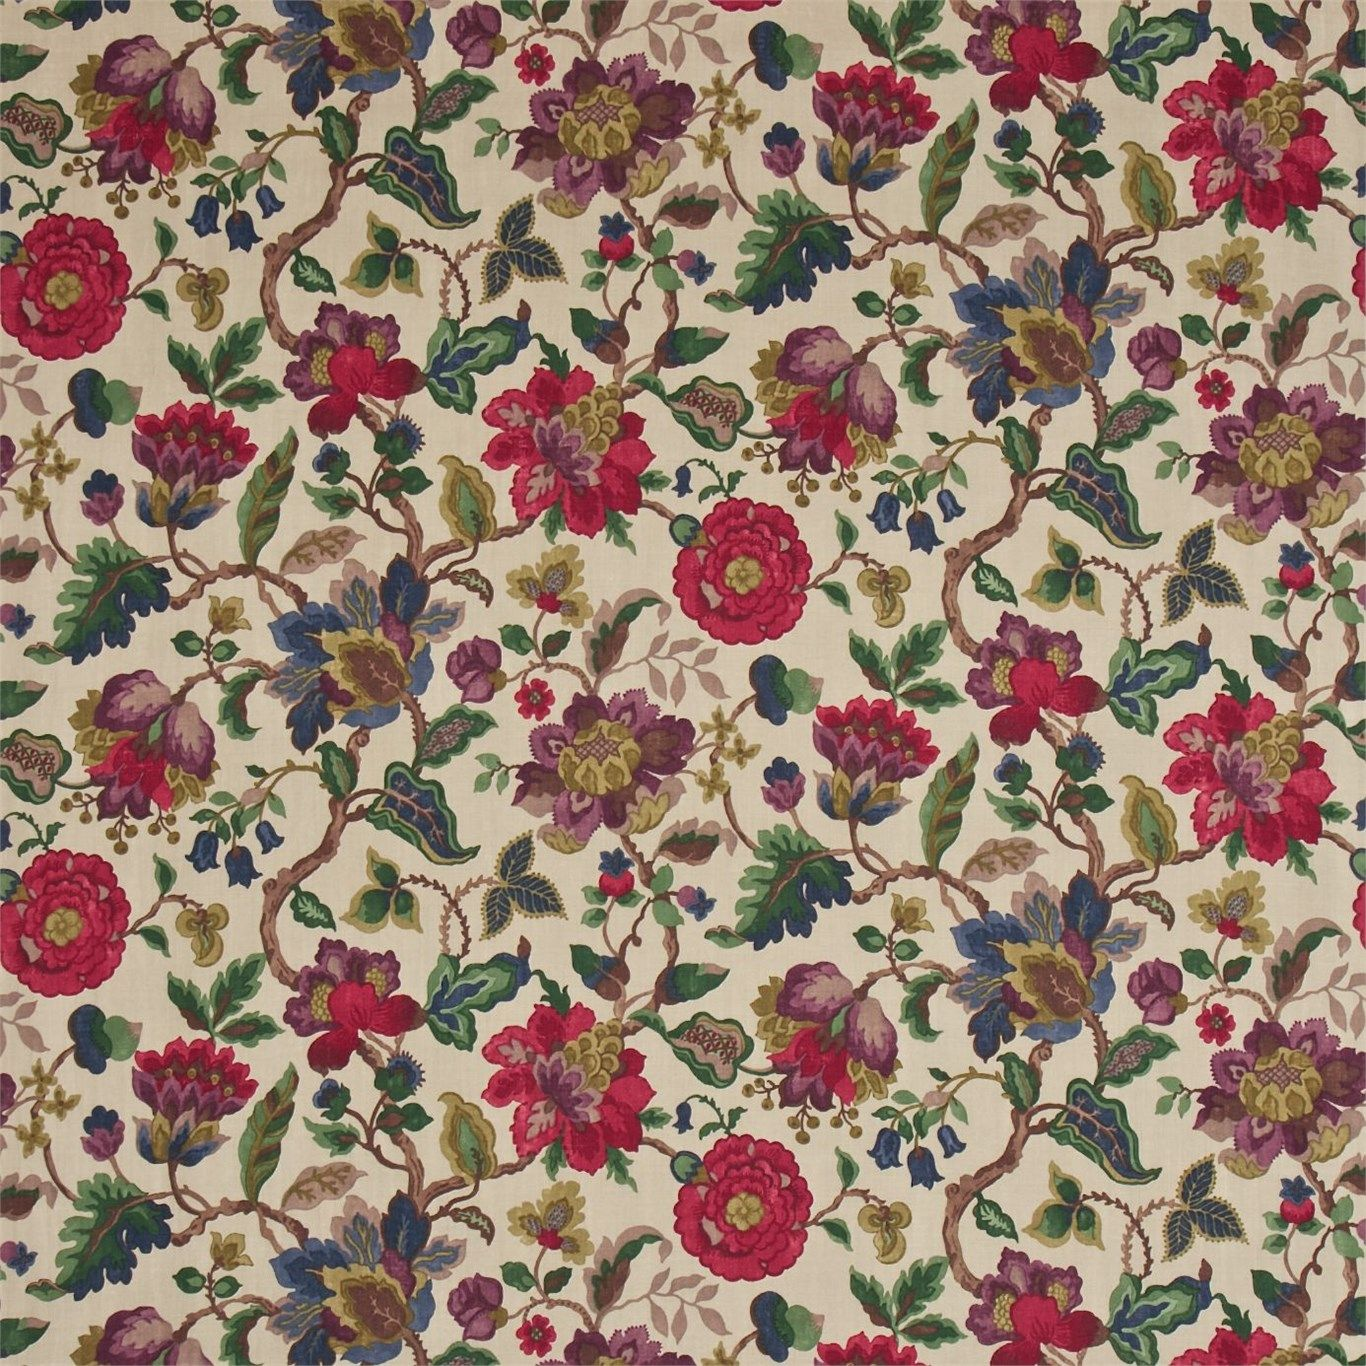 Products harlequin designer fabrics and wallpapers paradise - Amanpuri Fabric Designer Fabrics And Wallpapers By Sanderson Harlequin Morris Osborne Little And Many